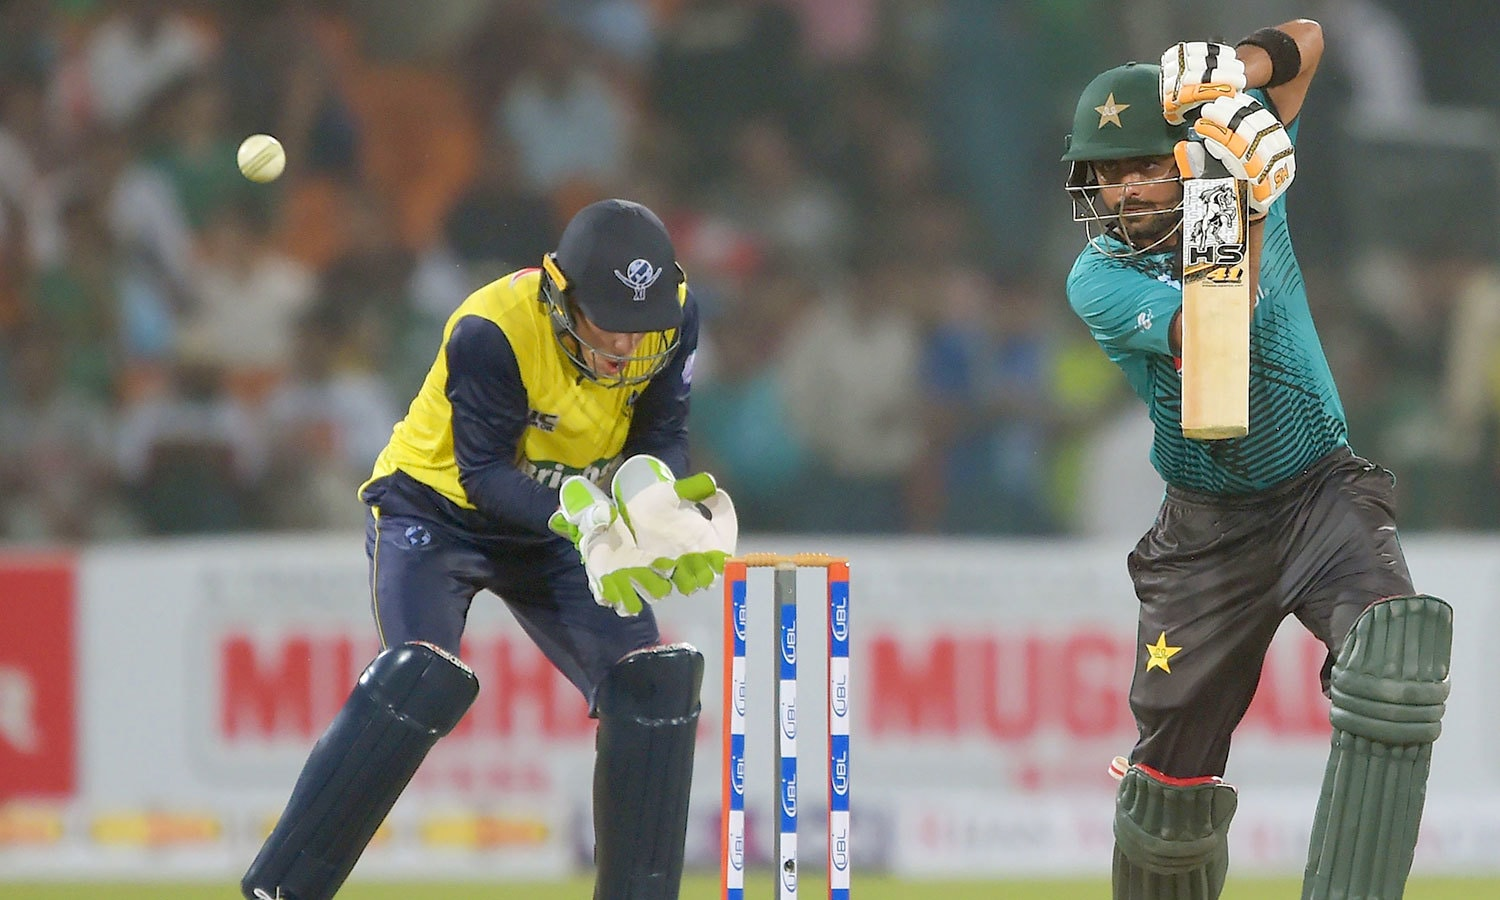 Pakistan opener Ahmed Shehzad plays a shot as World XI wicket-keeper Tim Paine looks on. —AFP